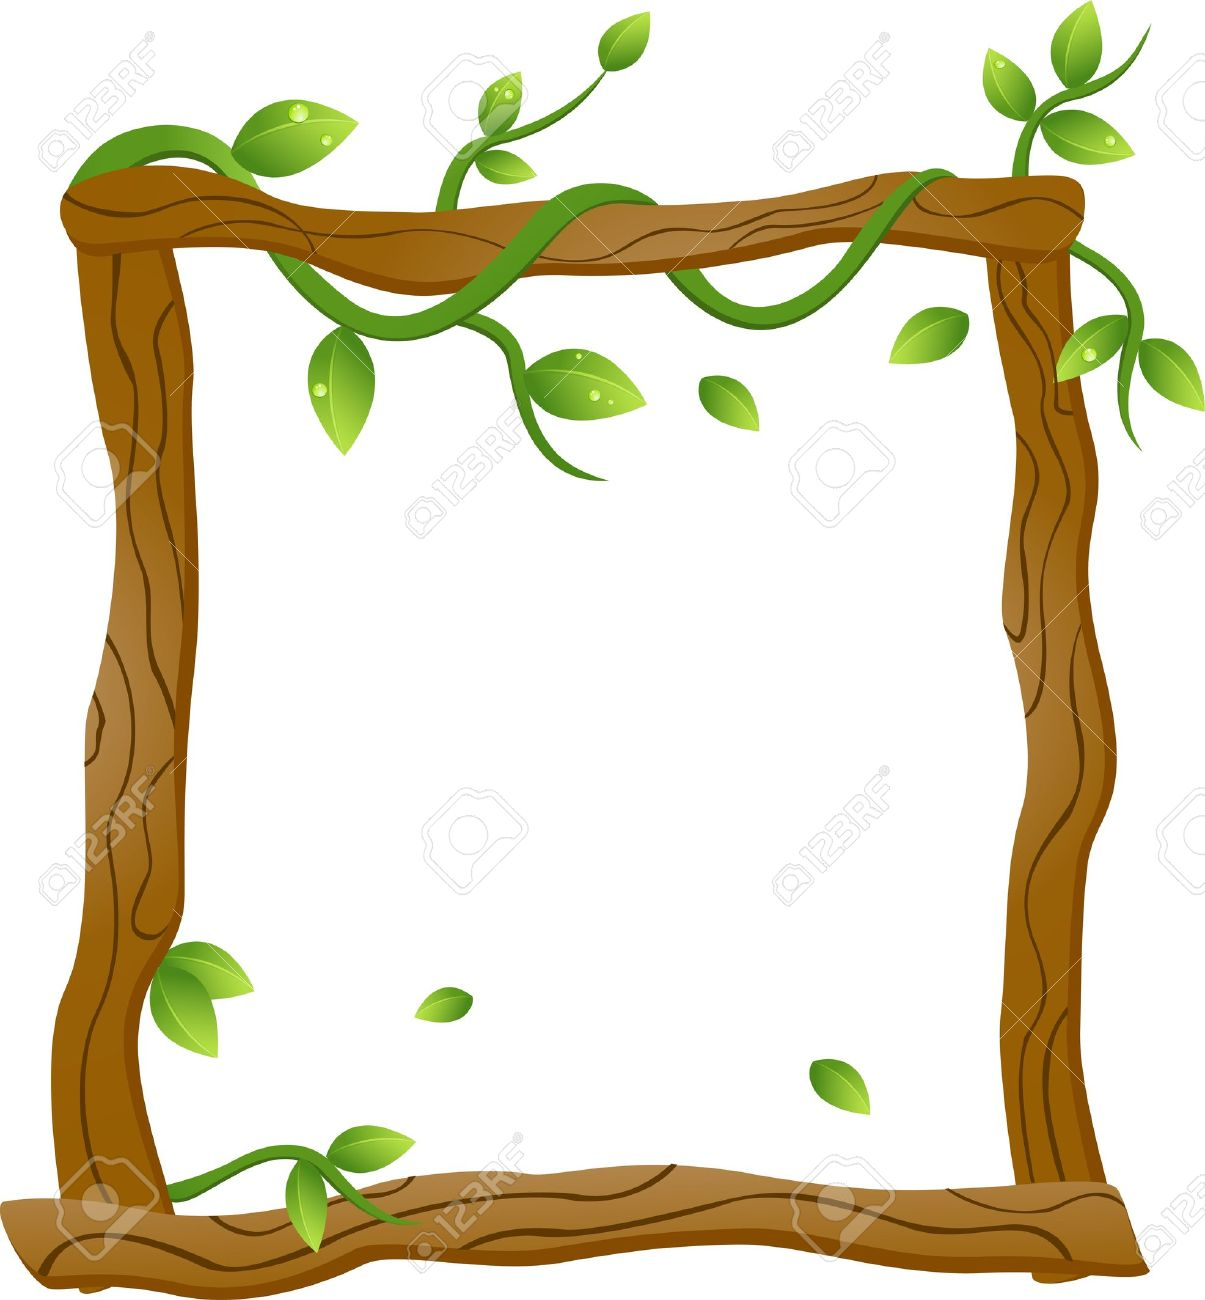 Vector Illustration Of Natural Frame Royalty Free Cliparts, Vectors ...